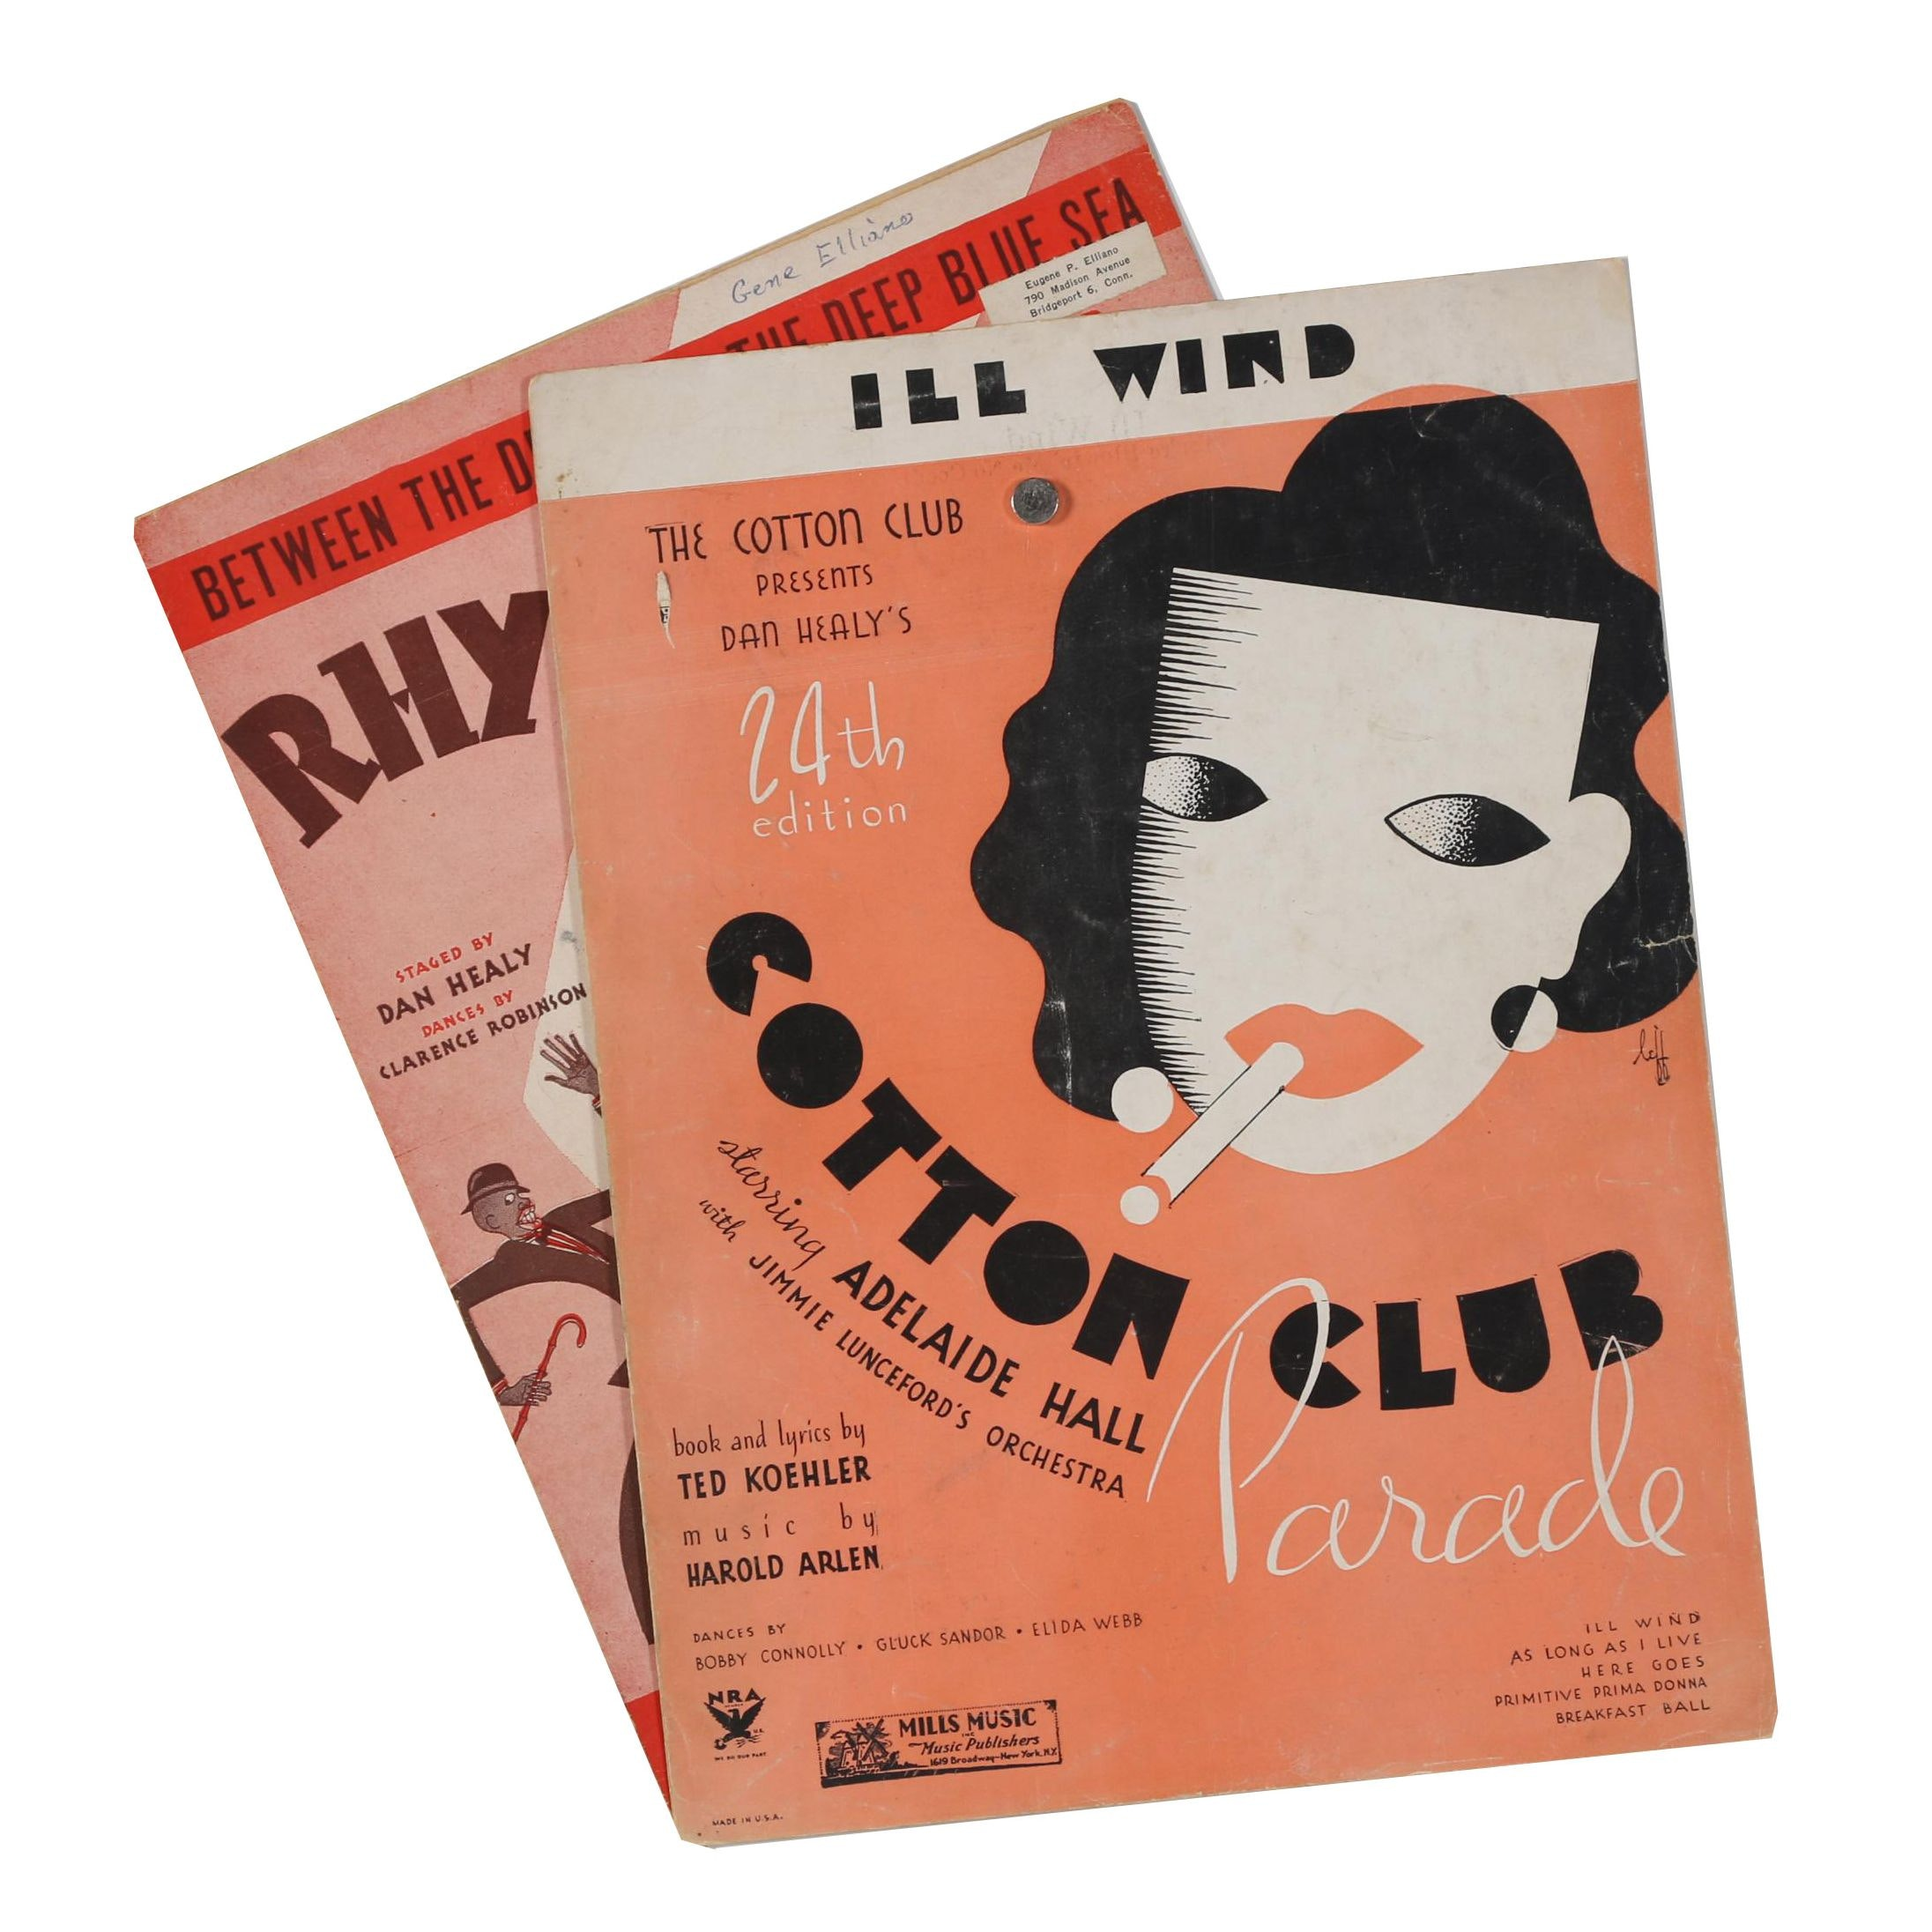 "1931 ""Between the Devil and the Deep Blue Sea"" and 1934 ""Ill Wind"" Sheet Music"